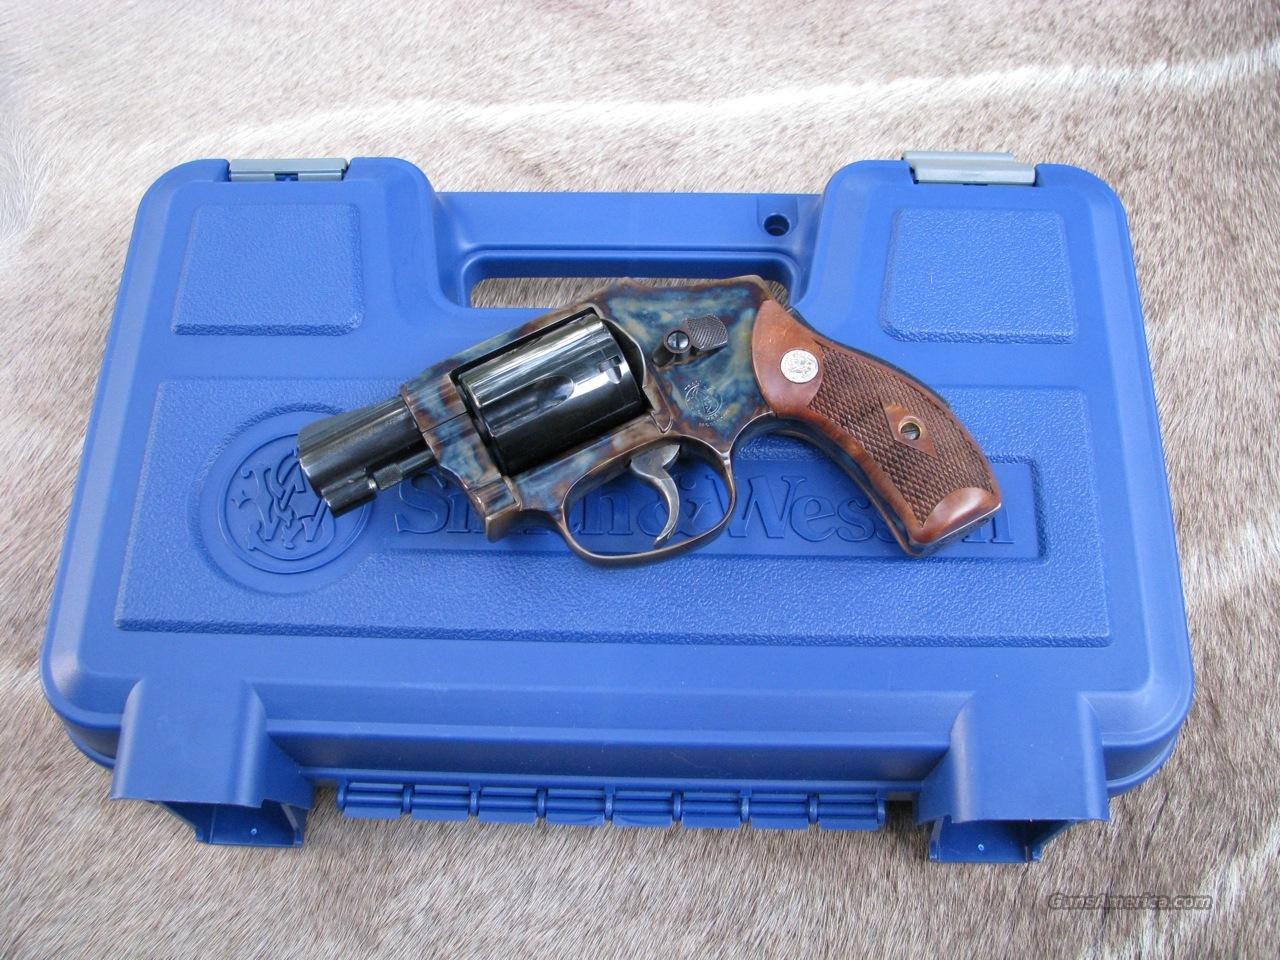 S&W M-40 Heritage 2-inch .38 Sp. case colored  Guns > Pistols > Smith & Wesson Revolvers > Pocket Pistols